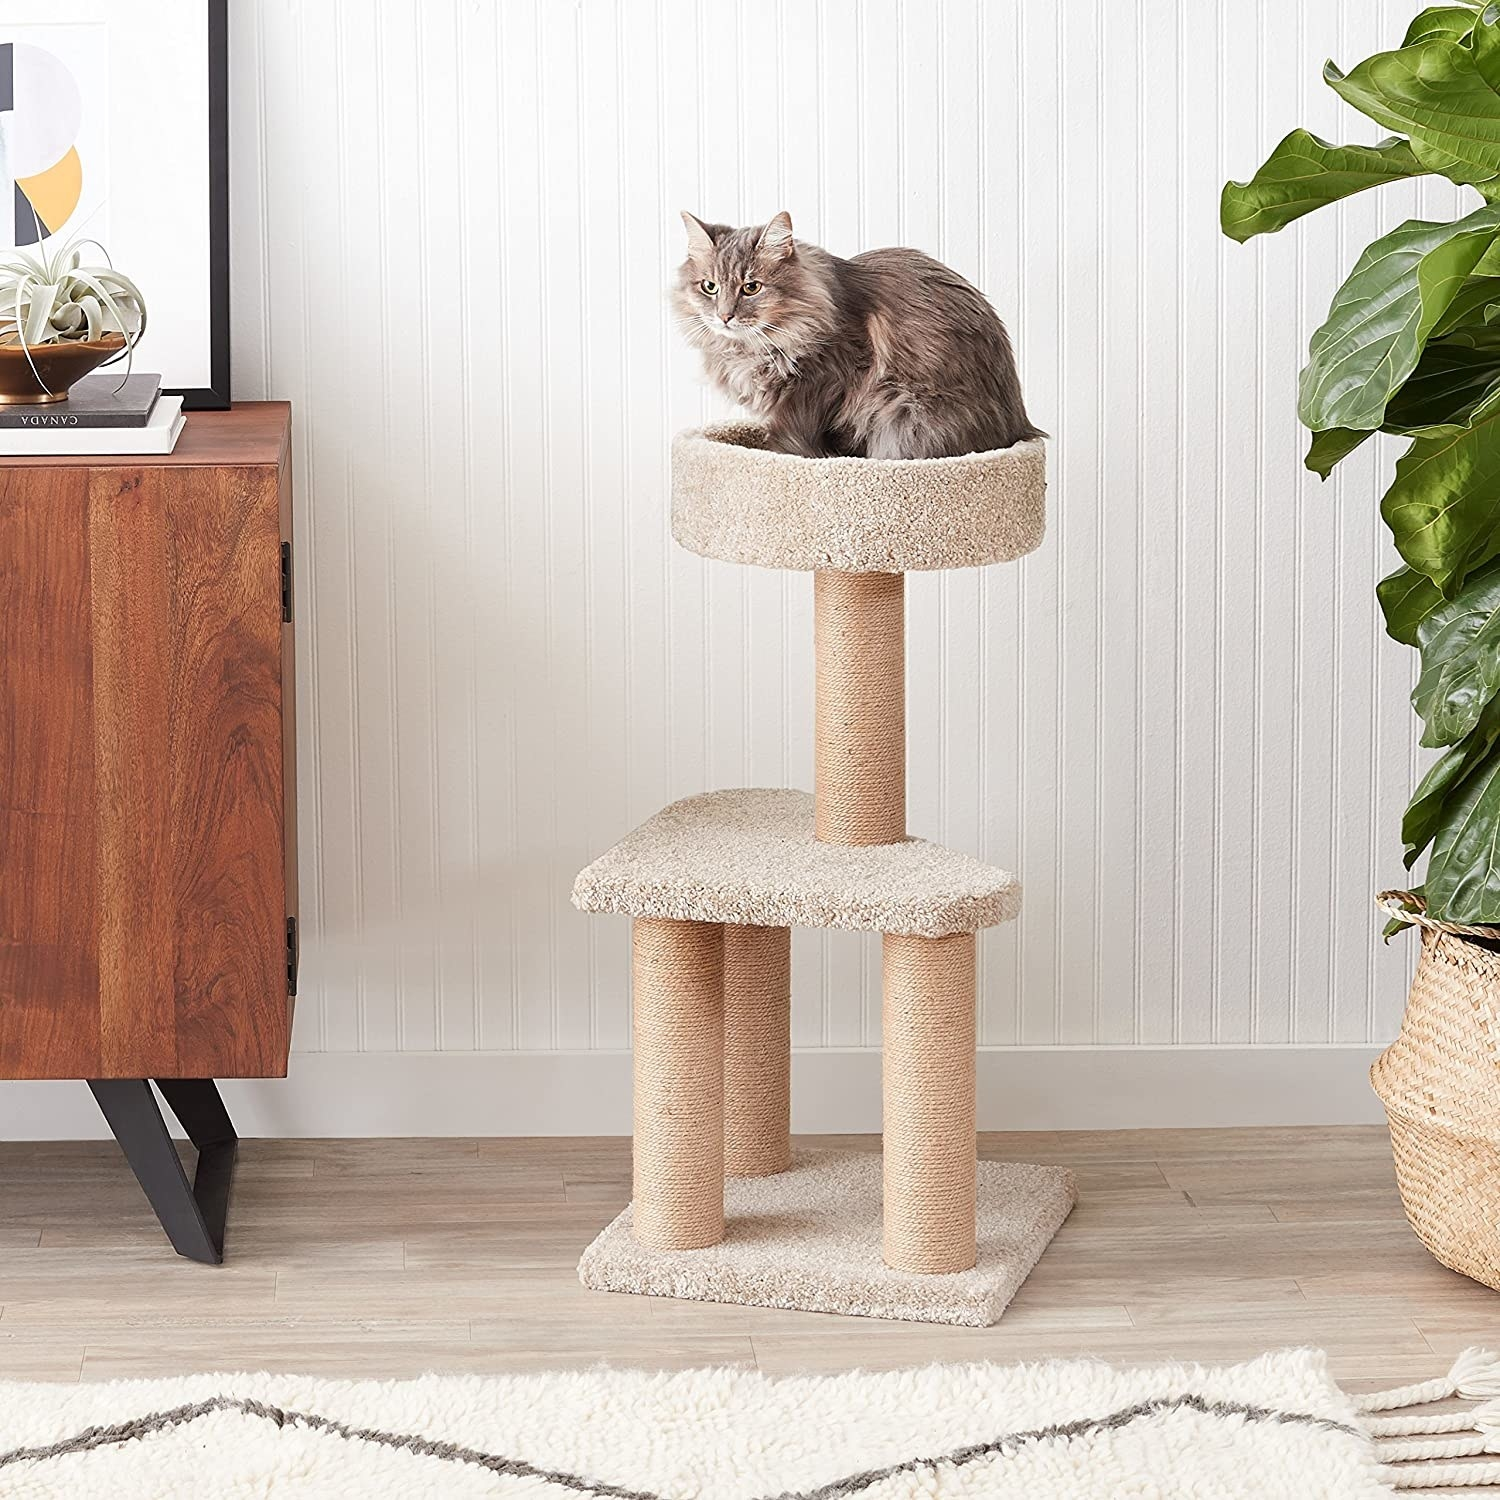 A cat on the top tier of the cat tree